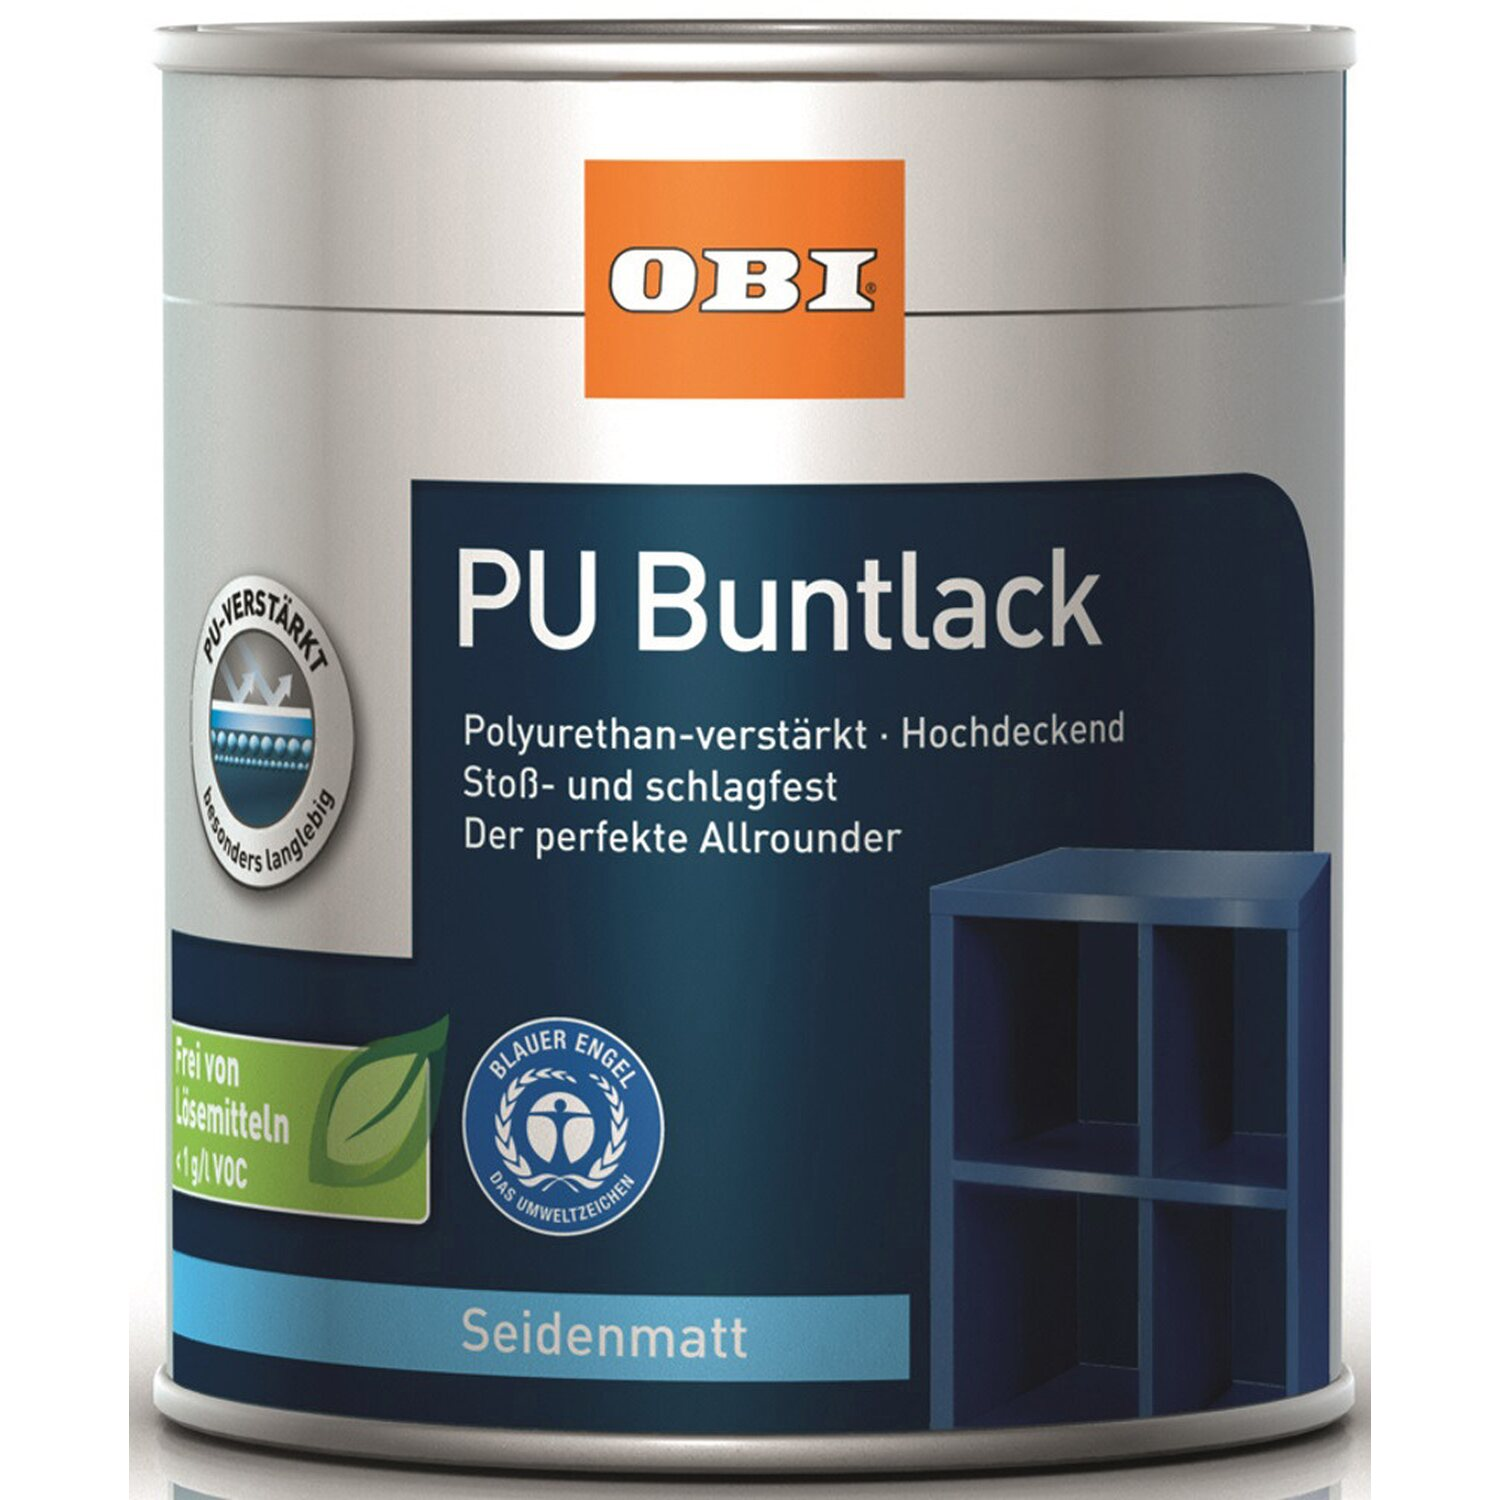 OBI PU Buntlack Coffee seidenmatt 750 ml